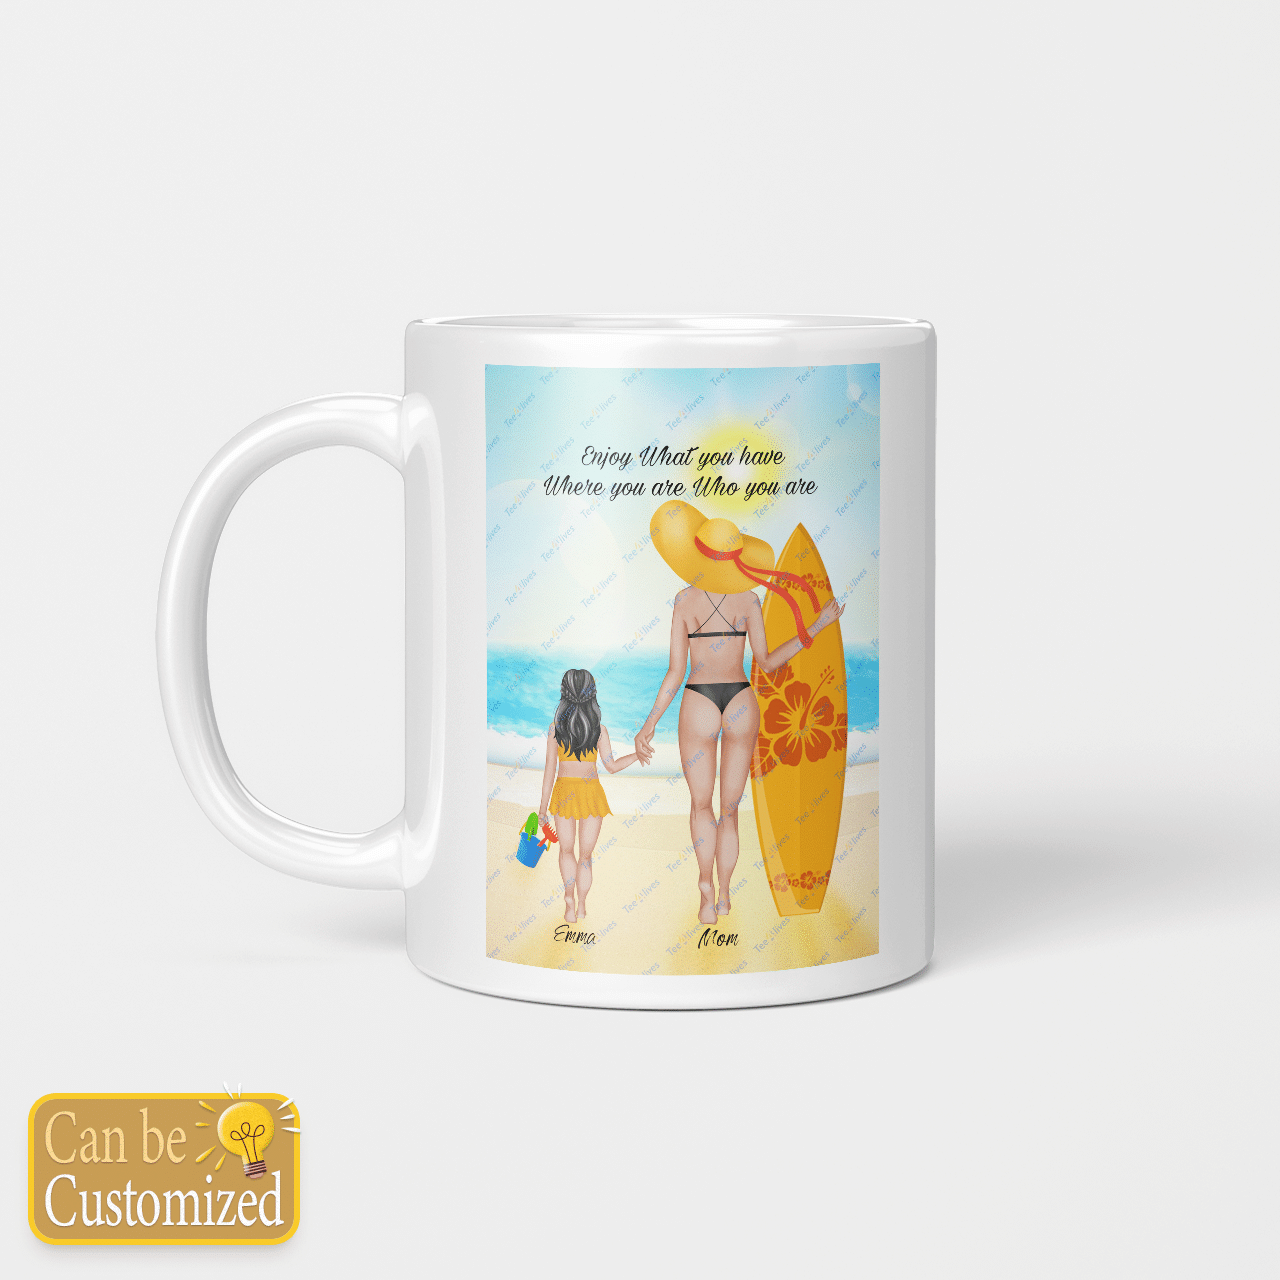 Custom Mug Personalized Mug Enjoy What You Have - Gift For Mom - Beverage Mug